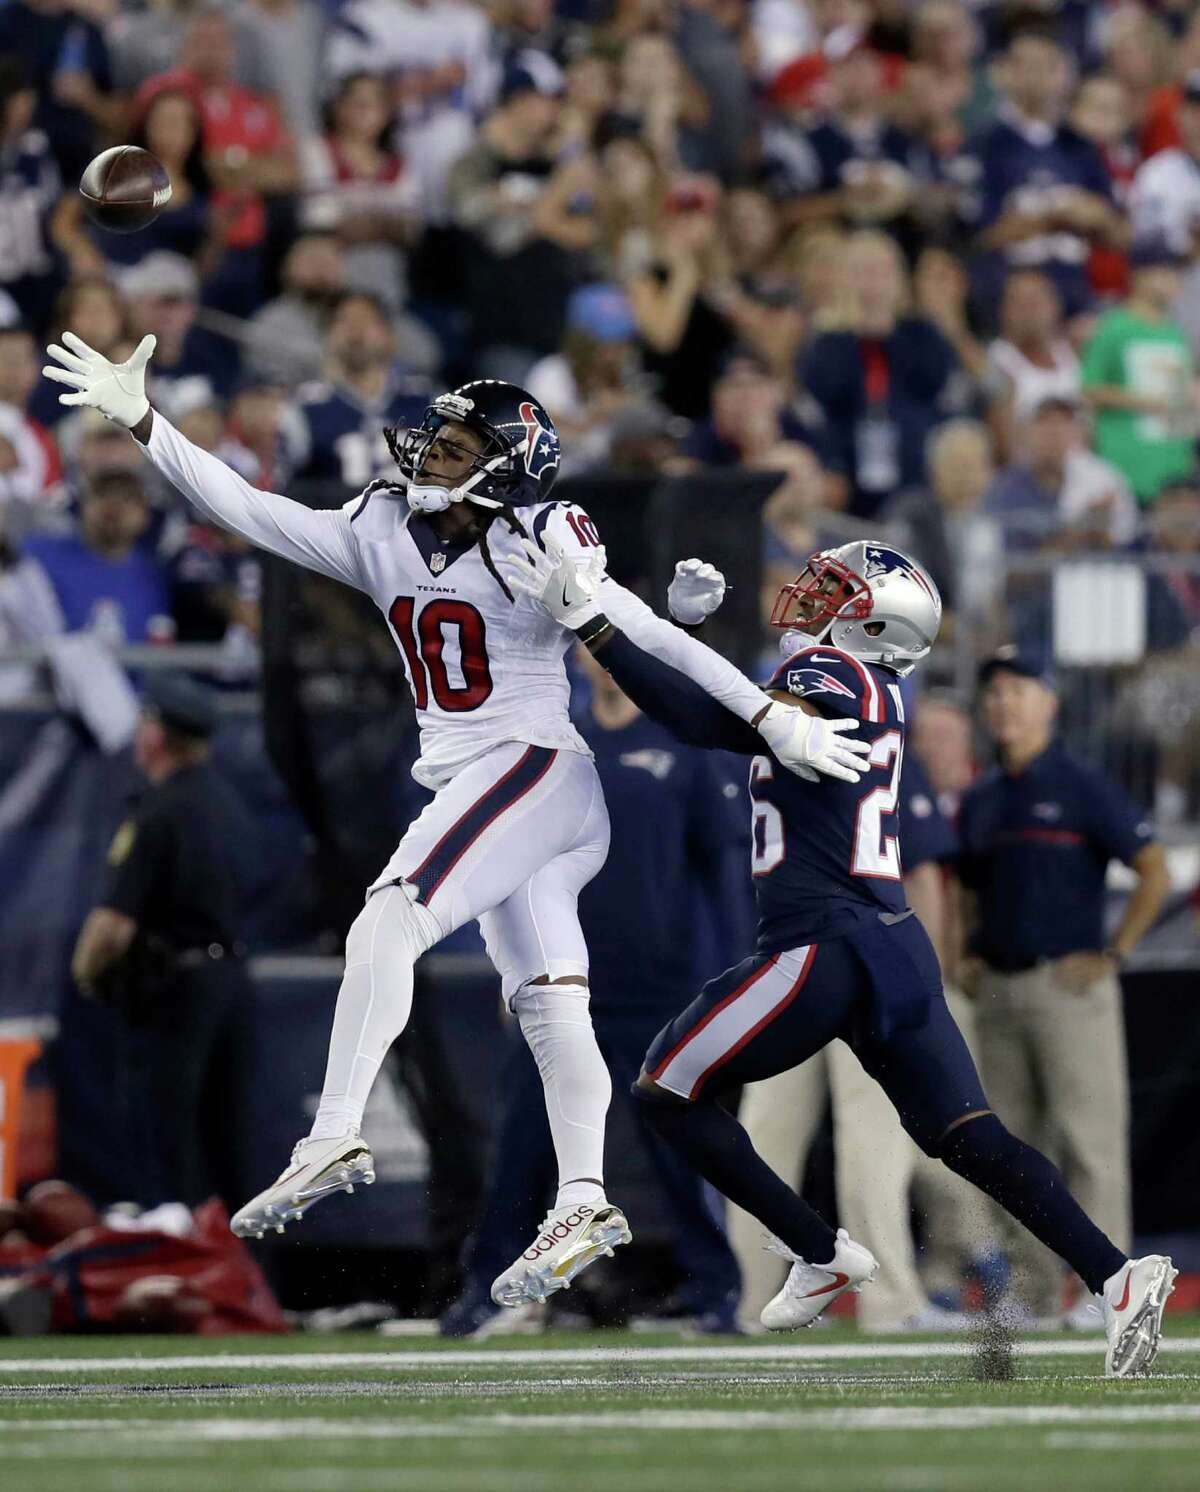 Houston Texans wide receiver DeAndre Hopkins (10) can't catch a pass as New England Patriots cornerback Logan Ryan (26) defends during the first half of an NFL football game Thursday, Sept. 22, 2016, in Foxborough, Mass. (AP Photo/Charles Krupa)